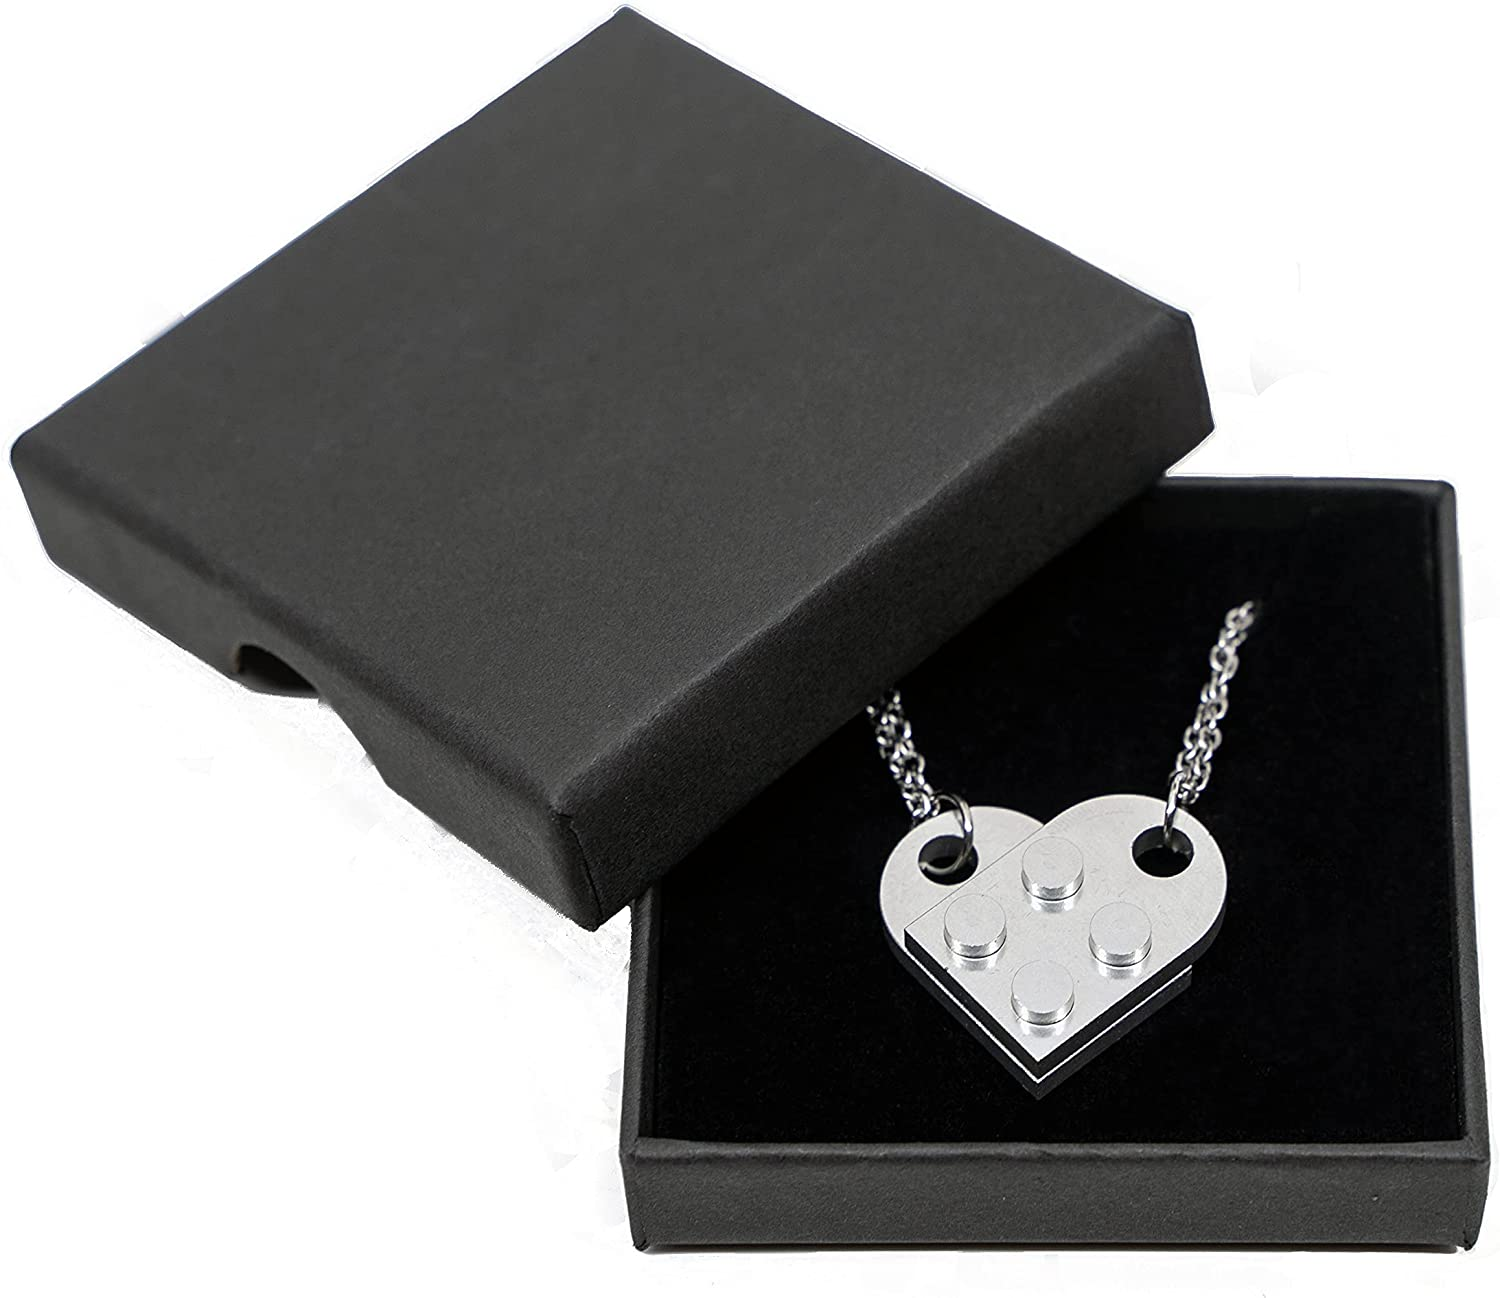 Brick Necklace for Couples Friendship Heart Pendant Shaped 2 Two Piece Jewelry Set Compatible with Lego Elements Gifts for Him Her…